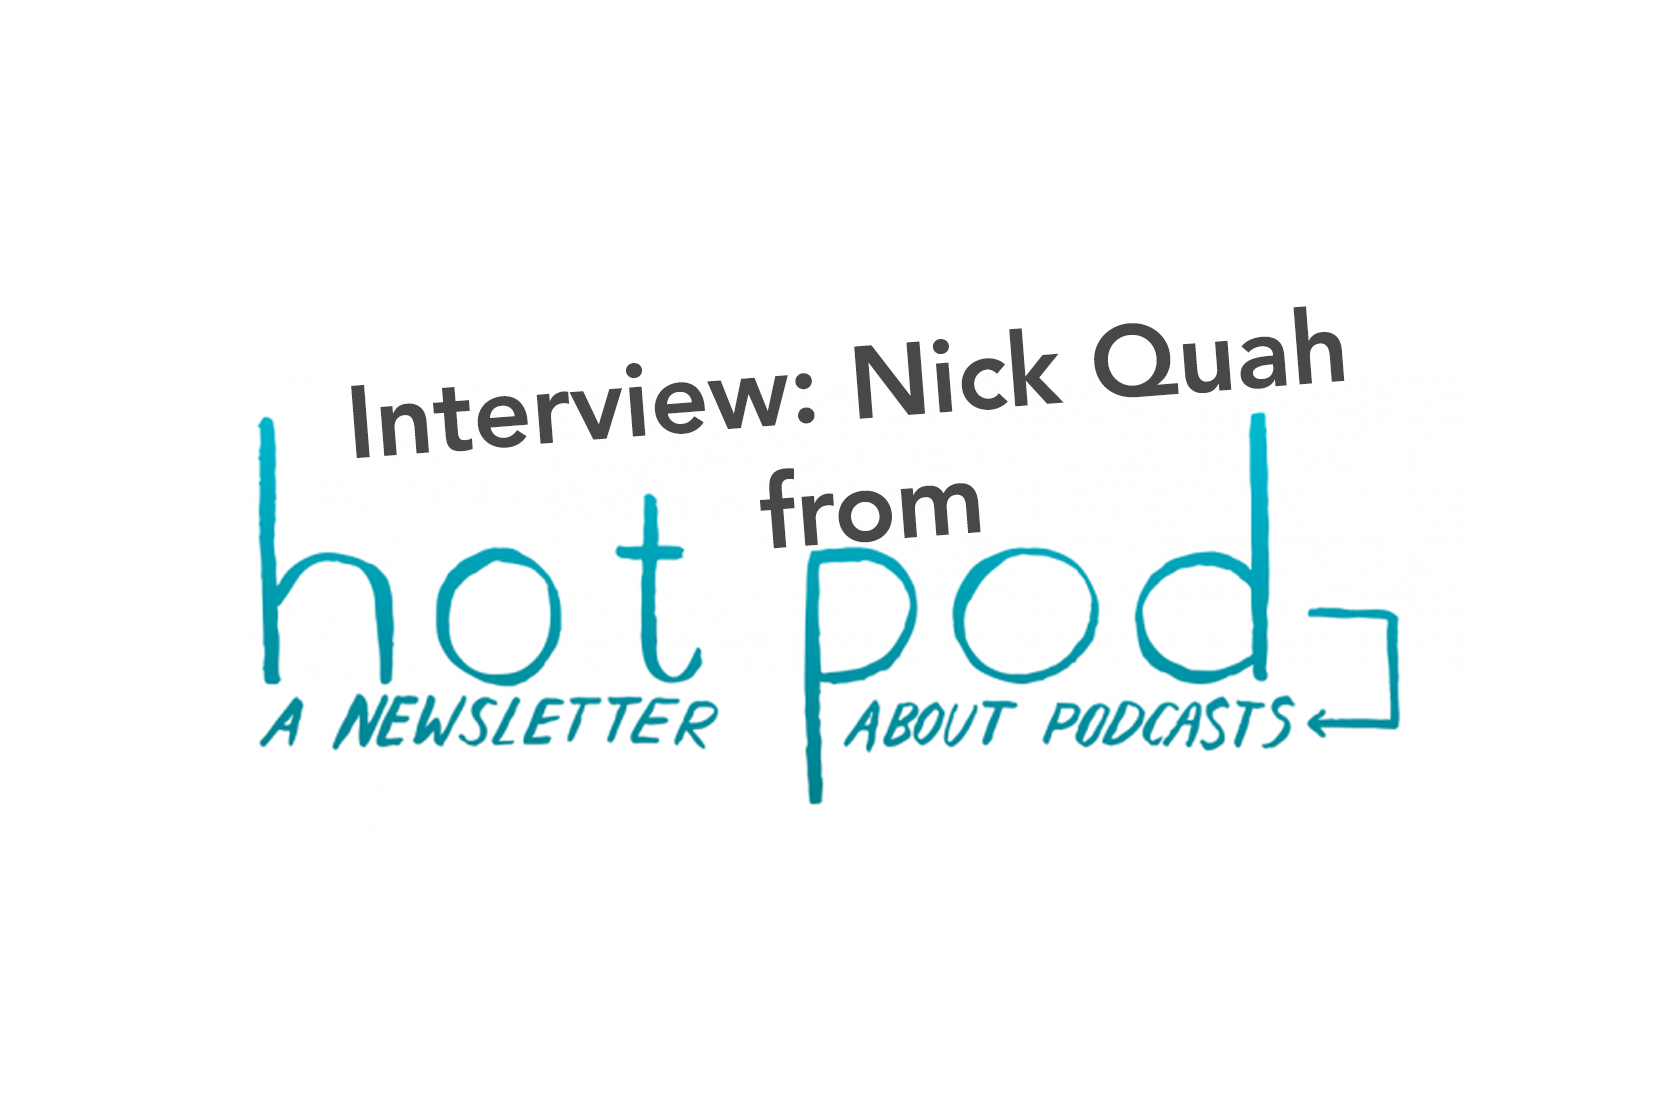 Interview with Nick Quah from Hot Pod newsletter